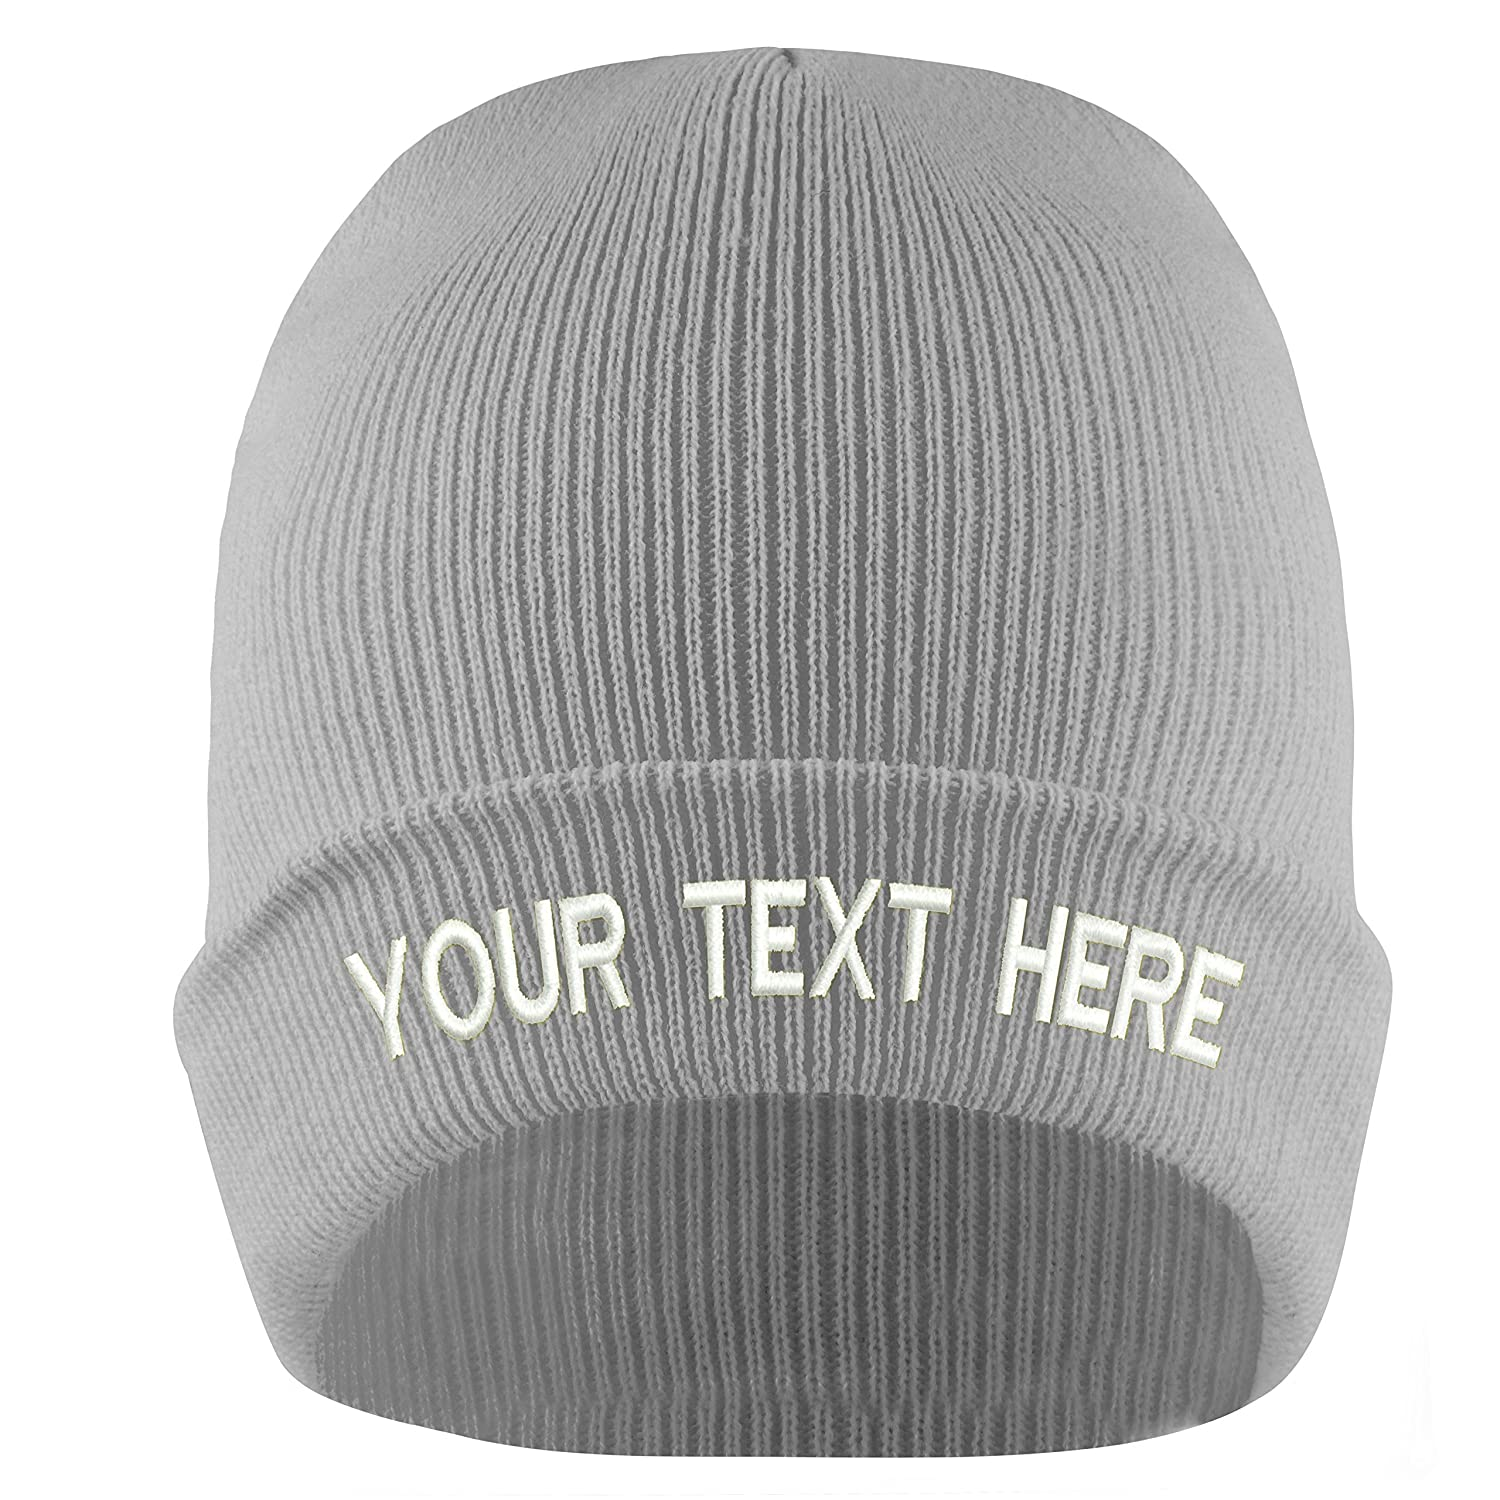 19 Colors Adjustable Personalized Embroidery Customized Knit Hat Cap for  Winter (Beige) at Amazon Men s Clothing store  05180e61a00